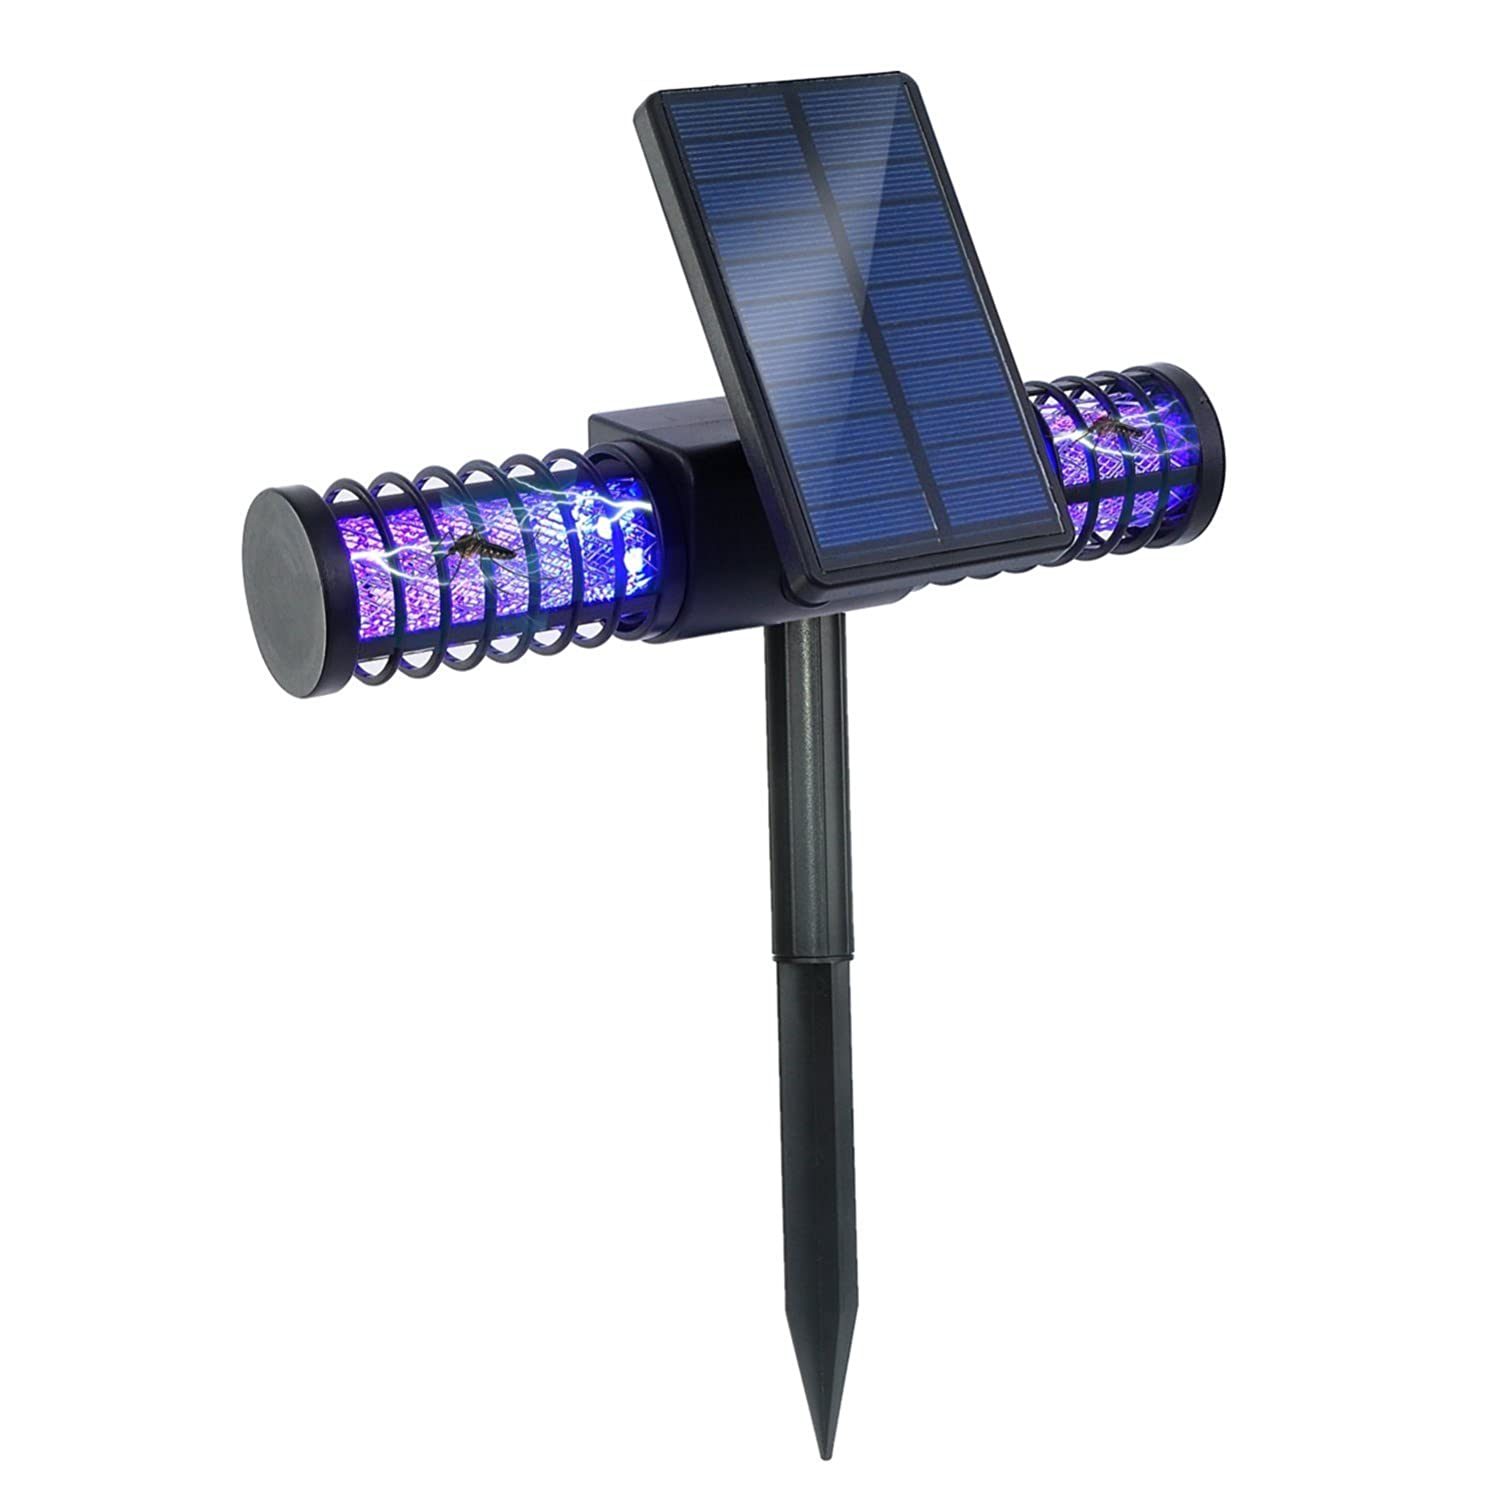 BATTOP Solar LED Outdoor Mosquito Killer Lamp Larger Bug Zapper Light Whole Night Protect, Large